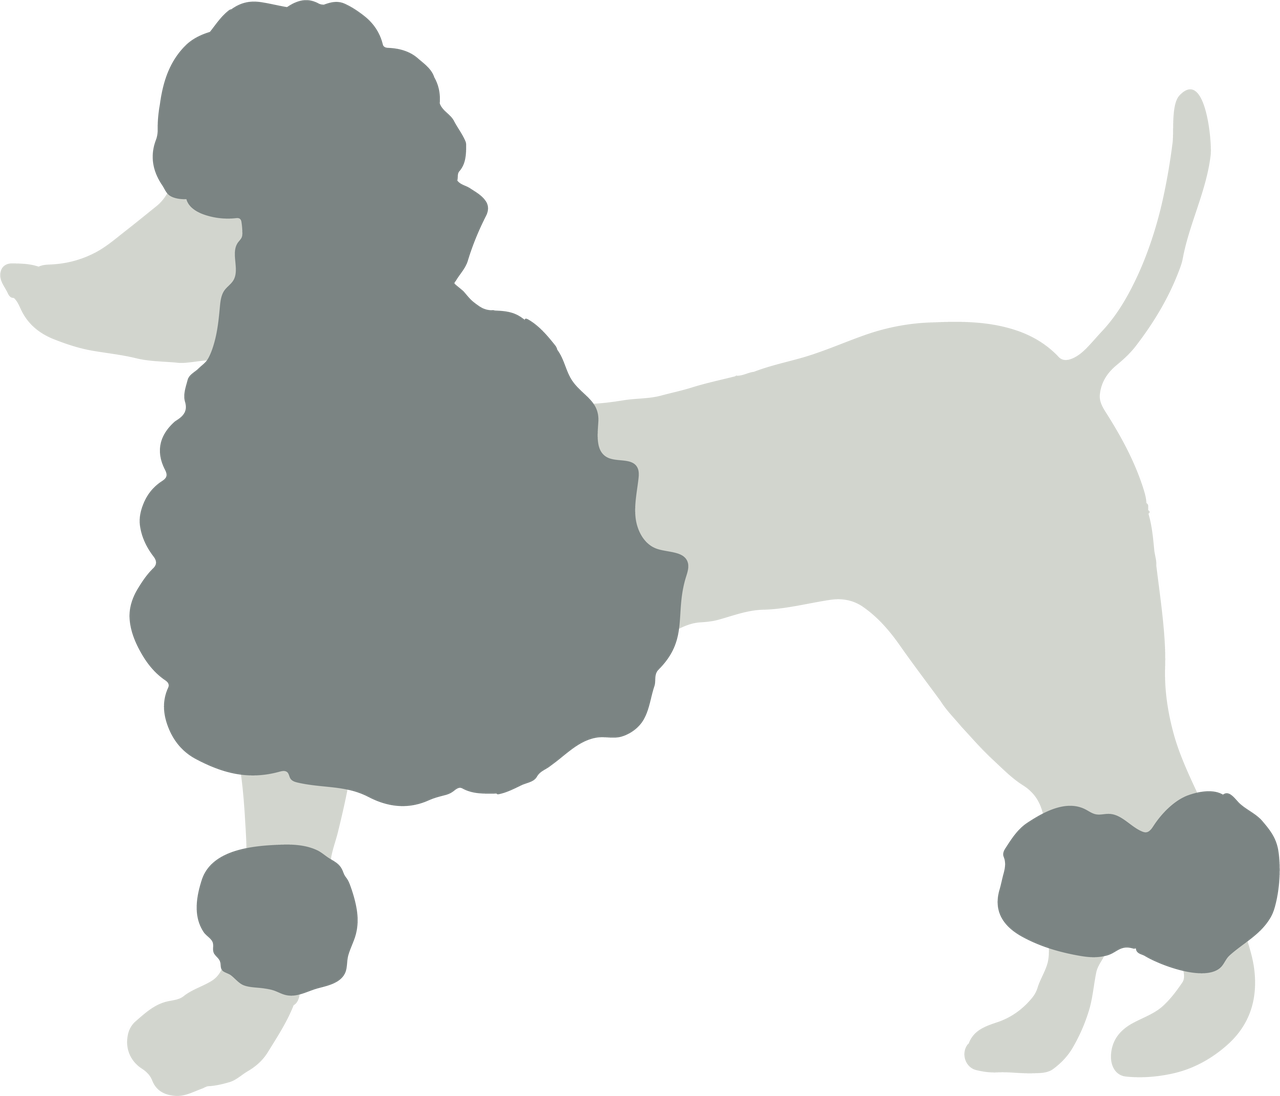 Poodle svg dog. Cut file snap click